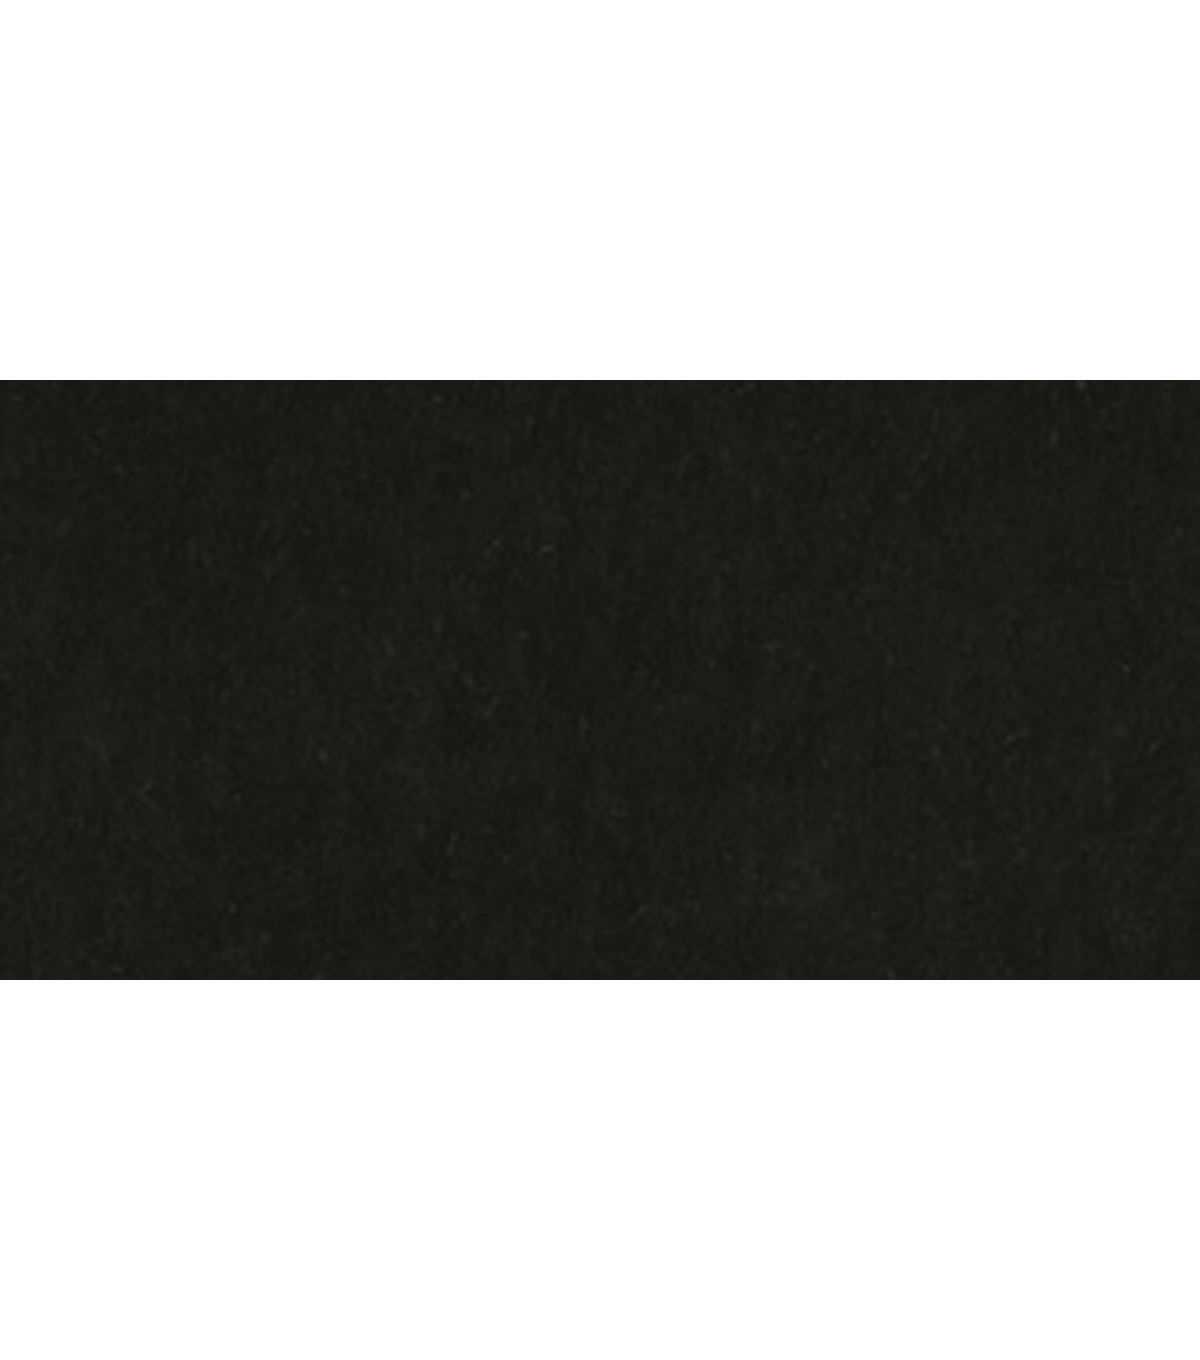 American Crafts Smooth Cardstock 12\u0022X12\u0022-Black